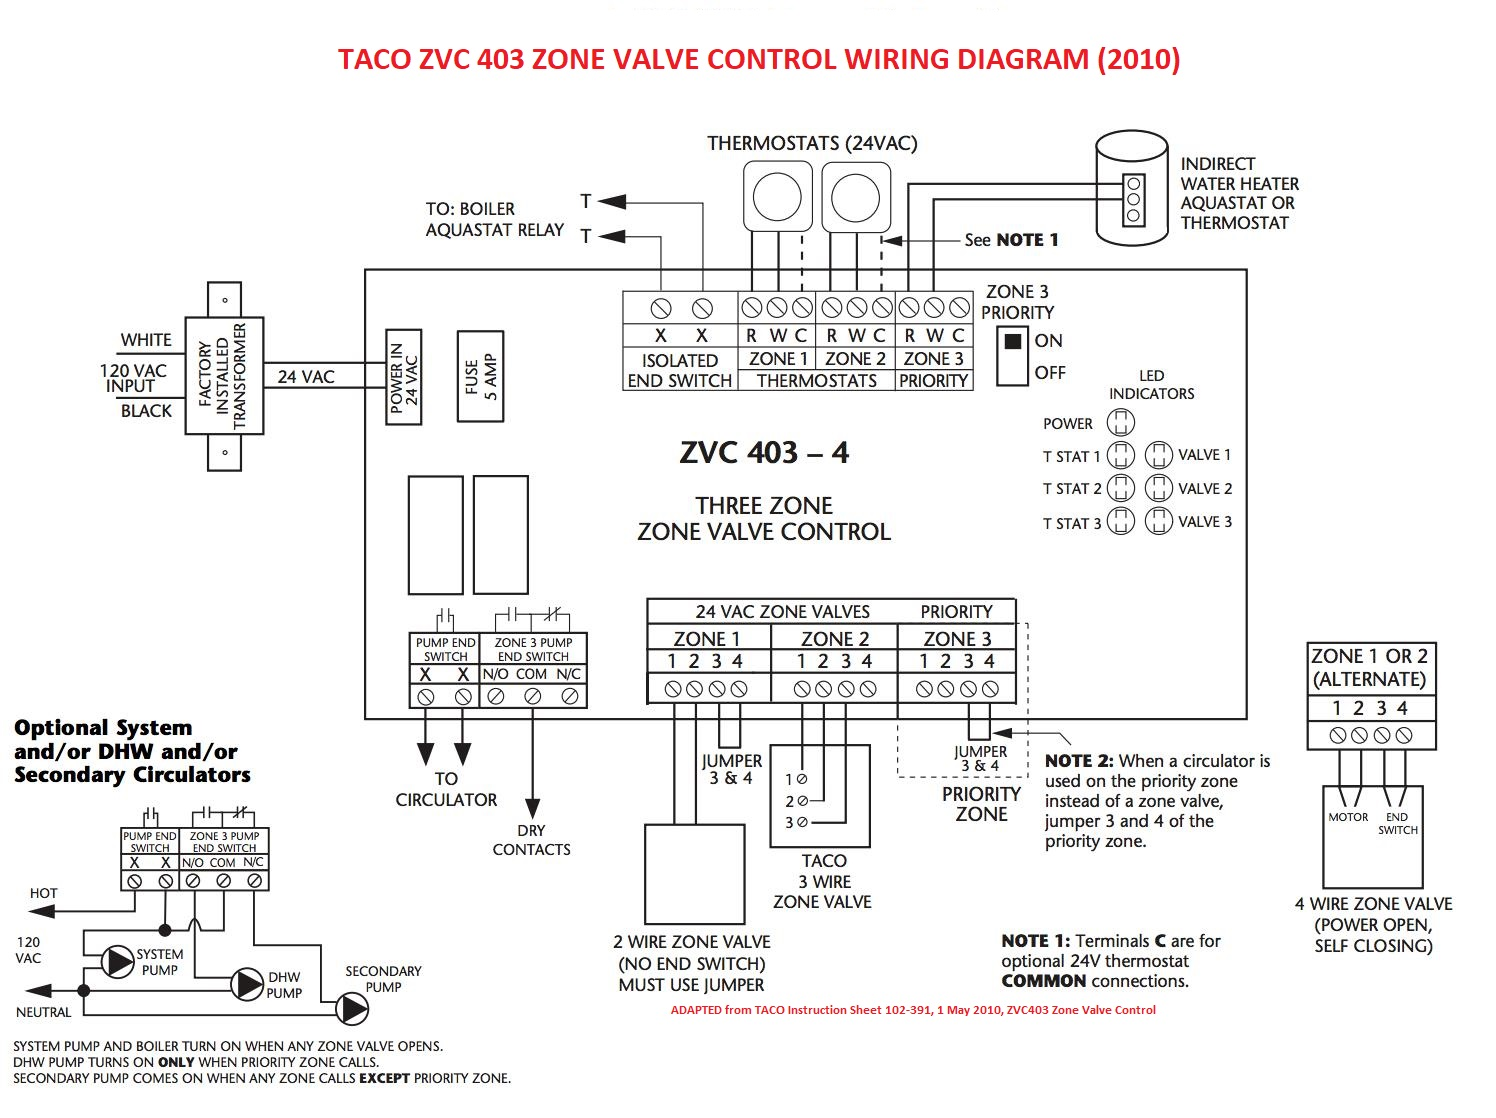 Zone Valve Wiring Manuals Installation & Instructions: Guide ... on ford solenoid diagram, solenoid circuit, solenoid wire, solenoid operation, solenoid engine, solenoid parts, solenoid switch diagram, solenoid valve, solenoid actuator, solenoid starter, solenoid relay, solenoid coil, solenoid connector, starter diagram, solenoid schematic, solenoid body diagram, solenoid assembly diagram, winch solenoid diagram, solenoid sensor, solenoid installation,